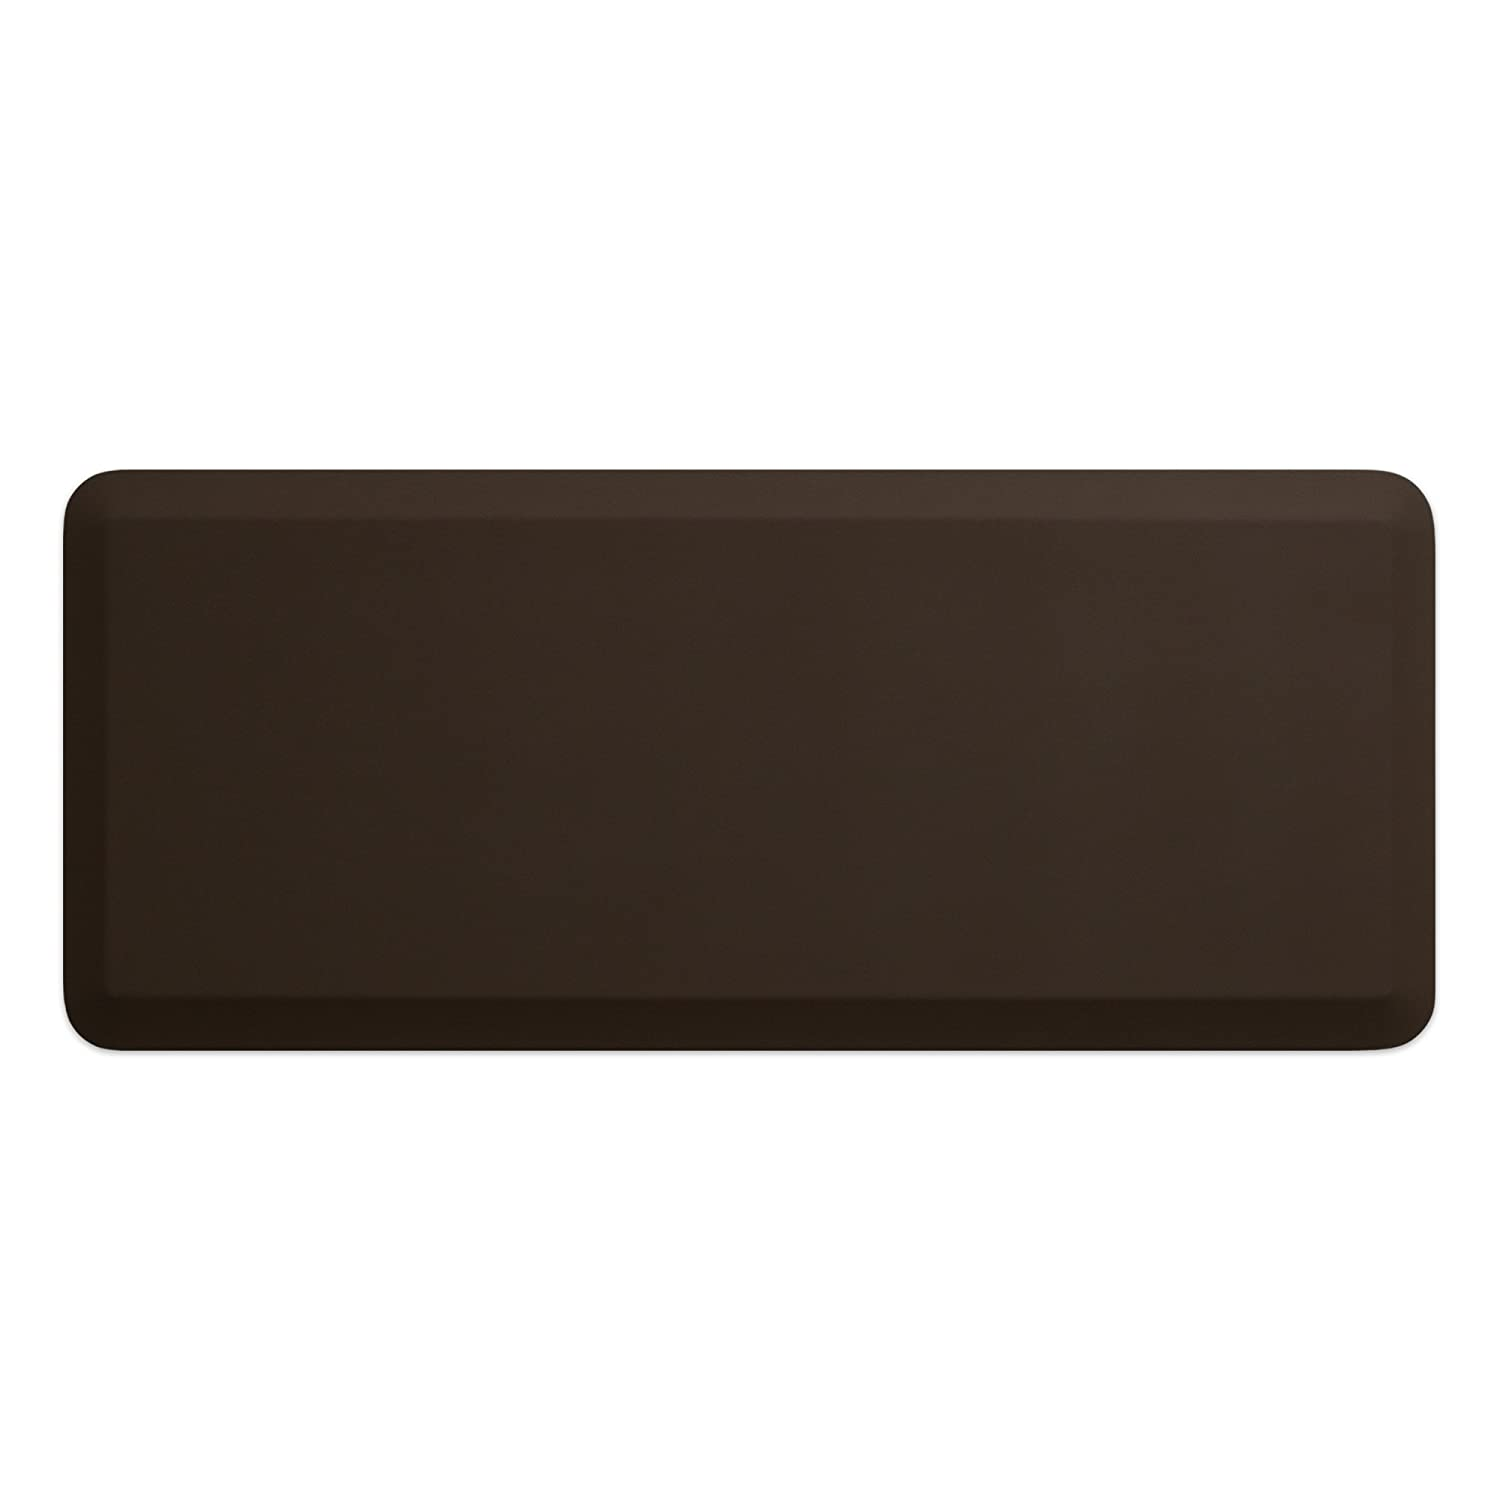 NewLife by GelPro 20 x 48 Inch Anti-Fatigue Kitchen Floor Mat - Earth by NewLife by GelPro   B005IZ0HNW